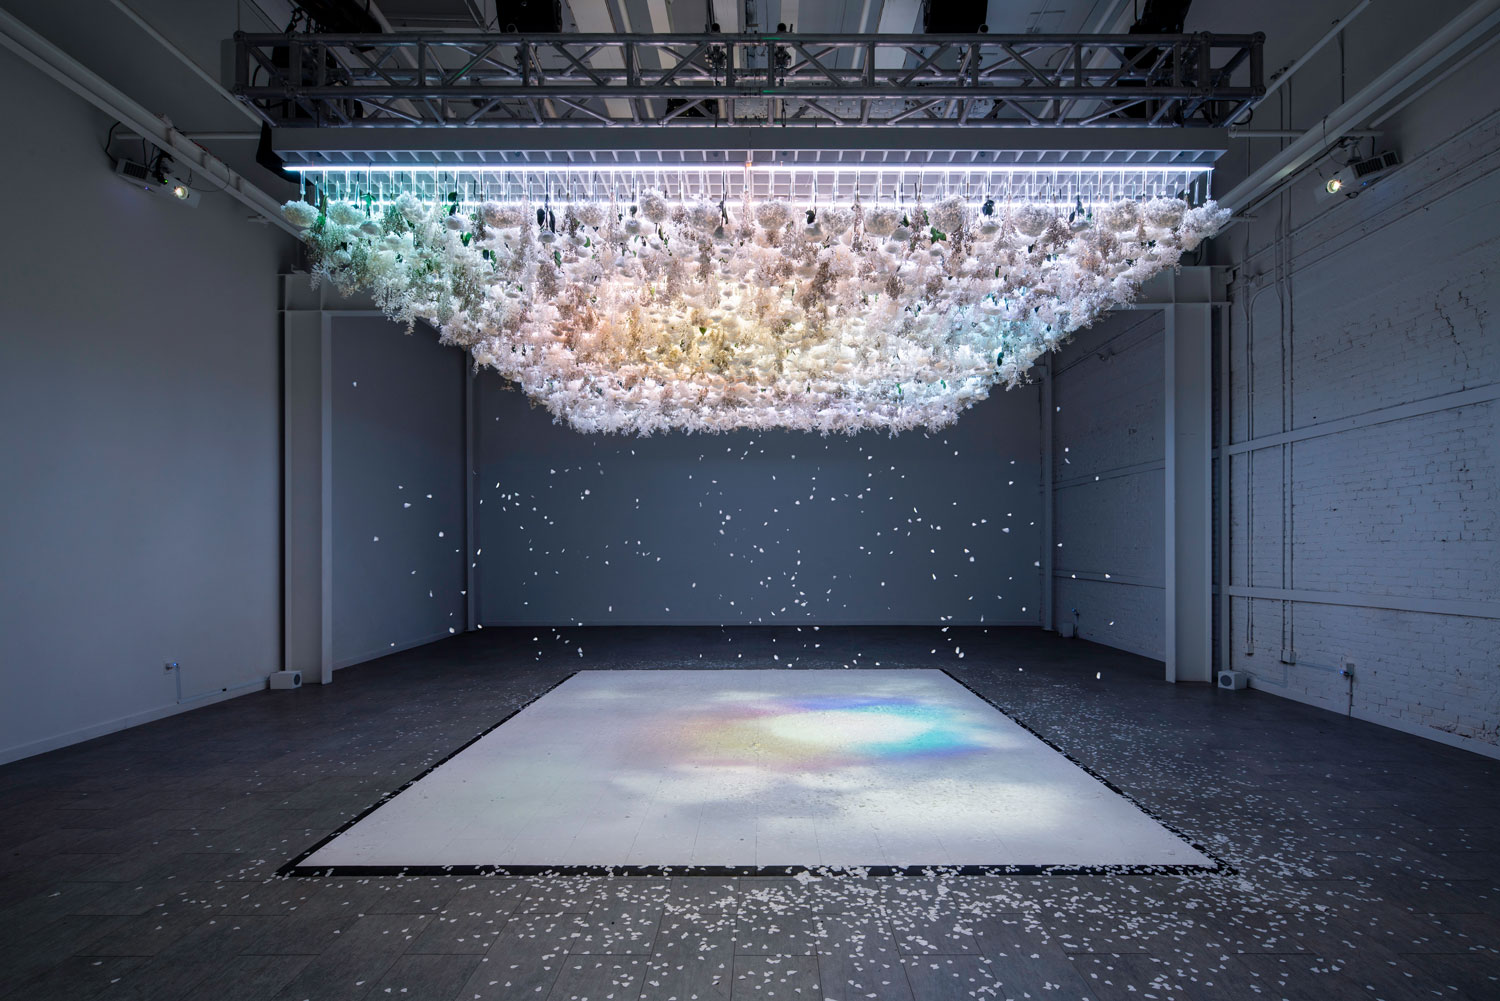 The Art of Bloom - A multi-sensory exhibition that focuses on the symbiotic relationship between humans and nature